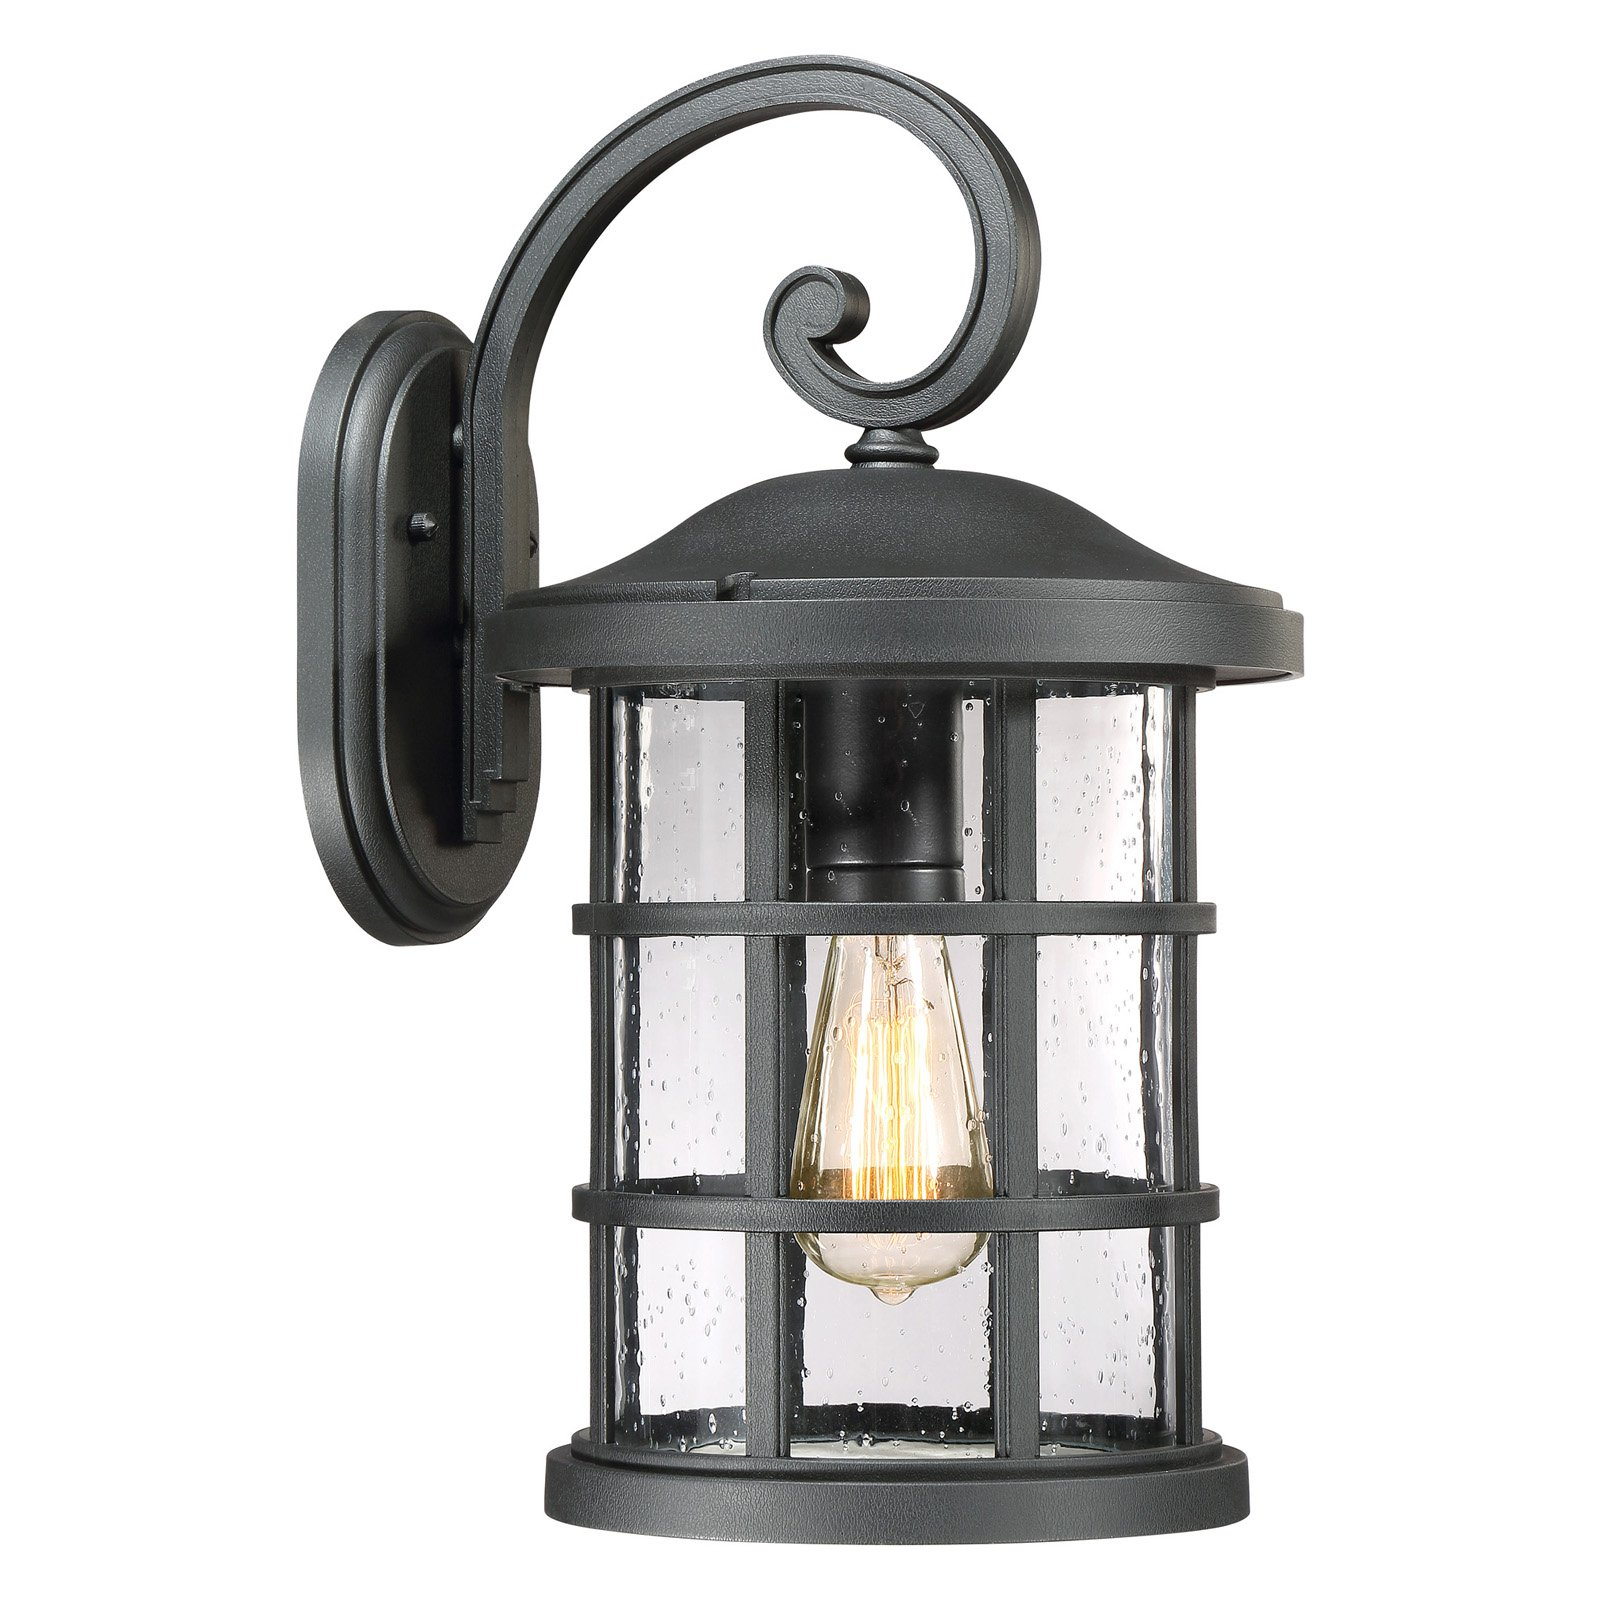 Quoizel Crusade CSE84 Outdoor Wall Sconce